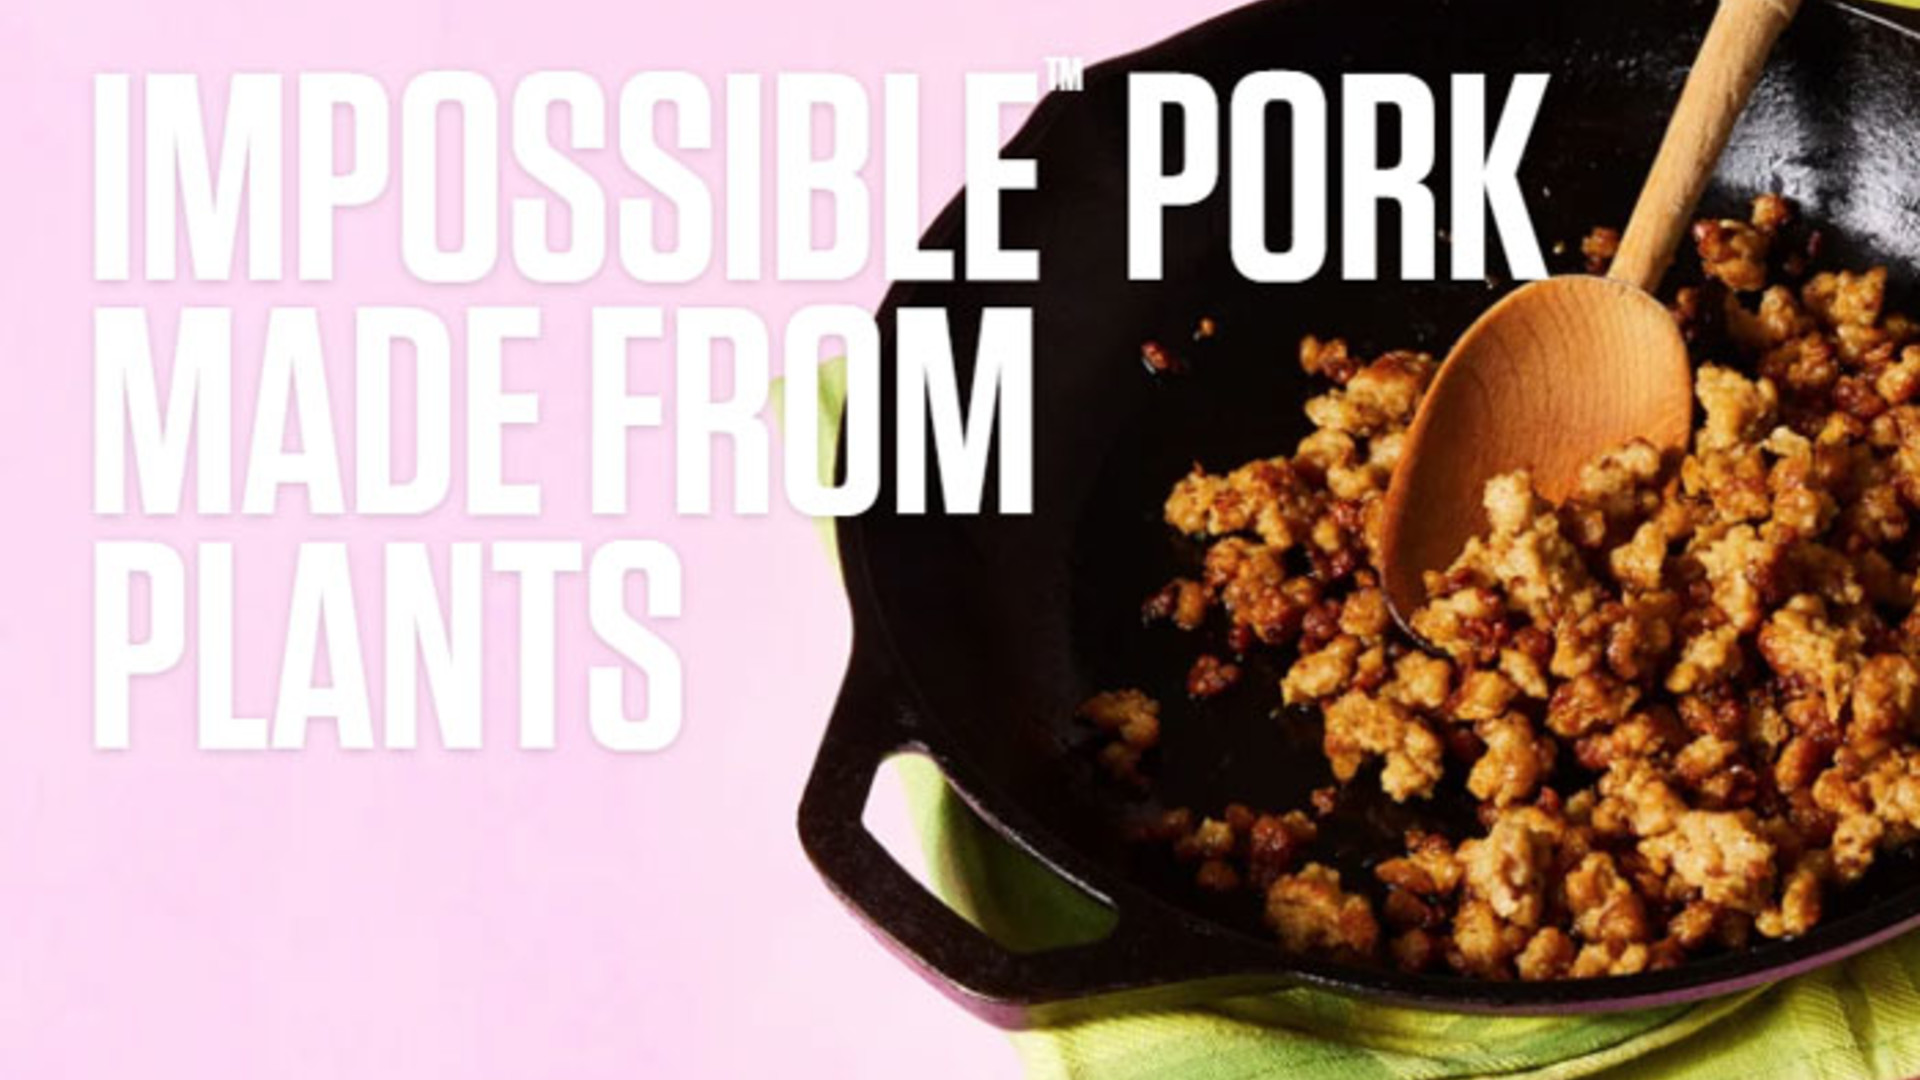 NPPC Says Impossible Pork is Impossible